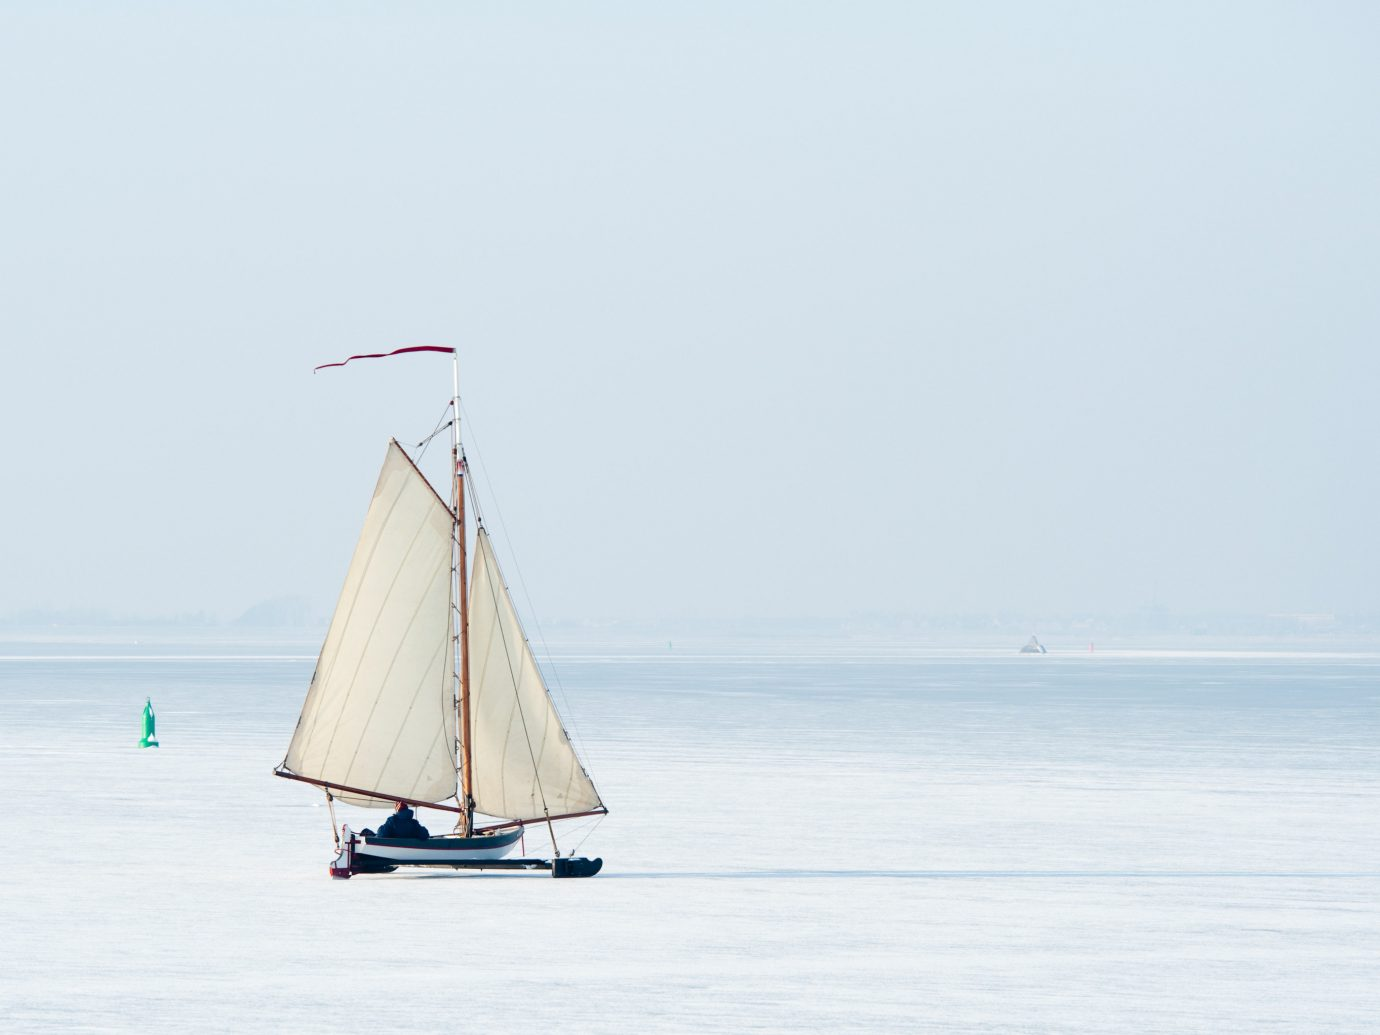 Offbeat water sky outdoor watercraft transport Boat sailboat sail vehicle Sea sailing ship sailing vessel Lake schooner wind mast sailing distance day